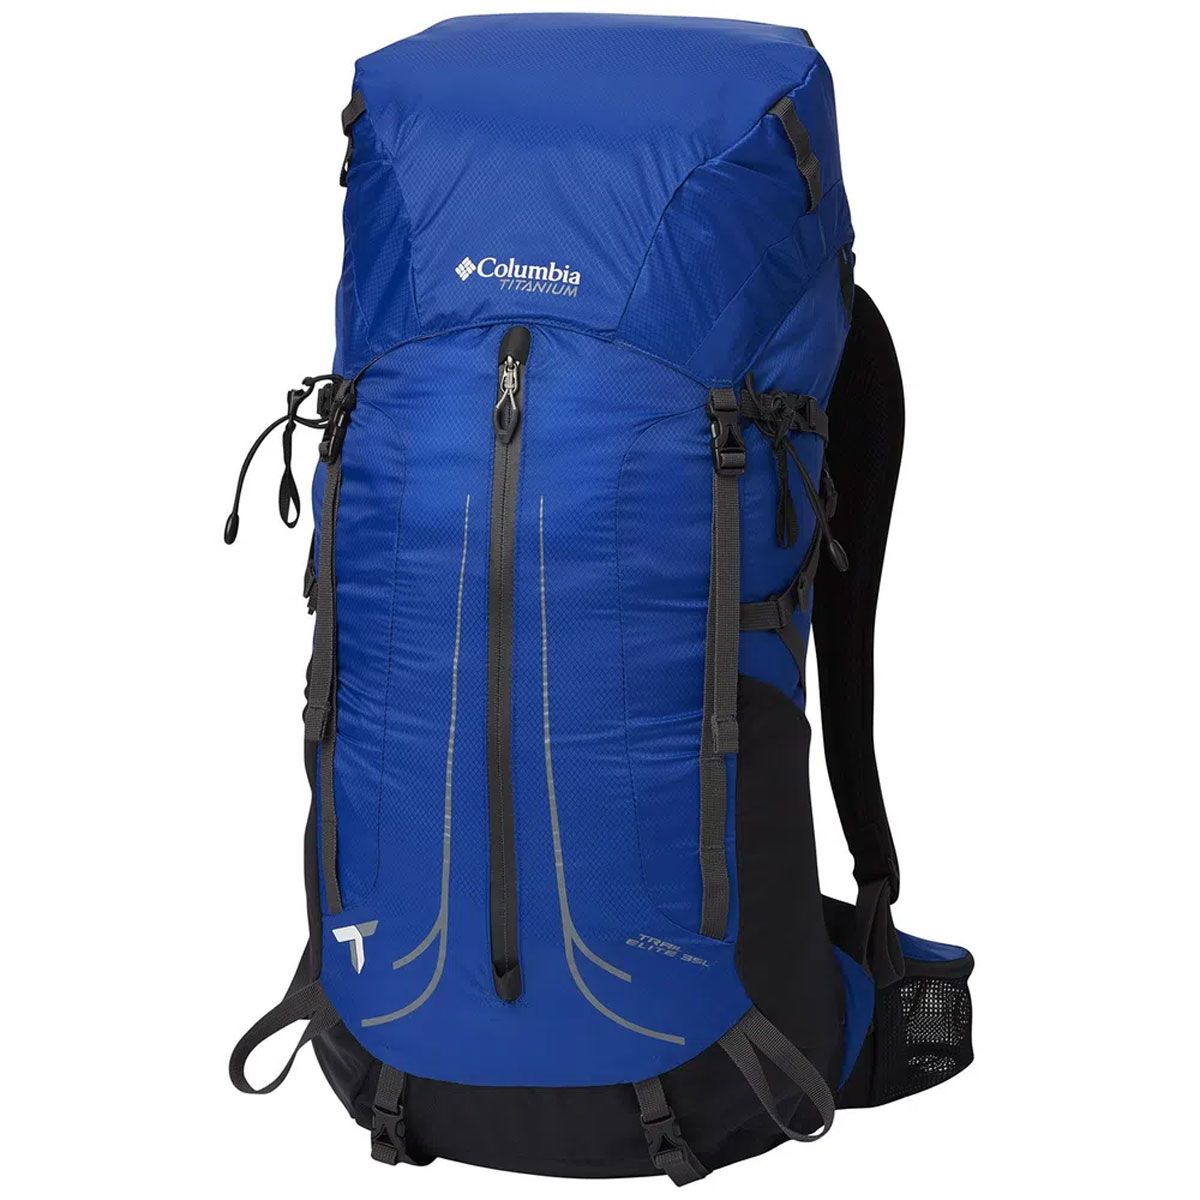 Mochila Columbia Trail Elite 35L BackPack Azul Shark Uni